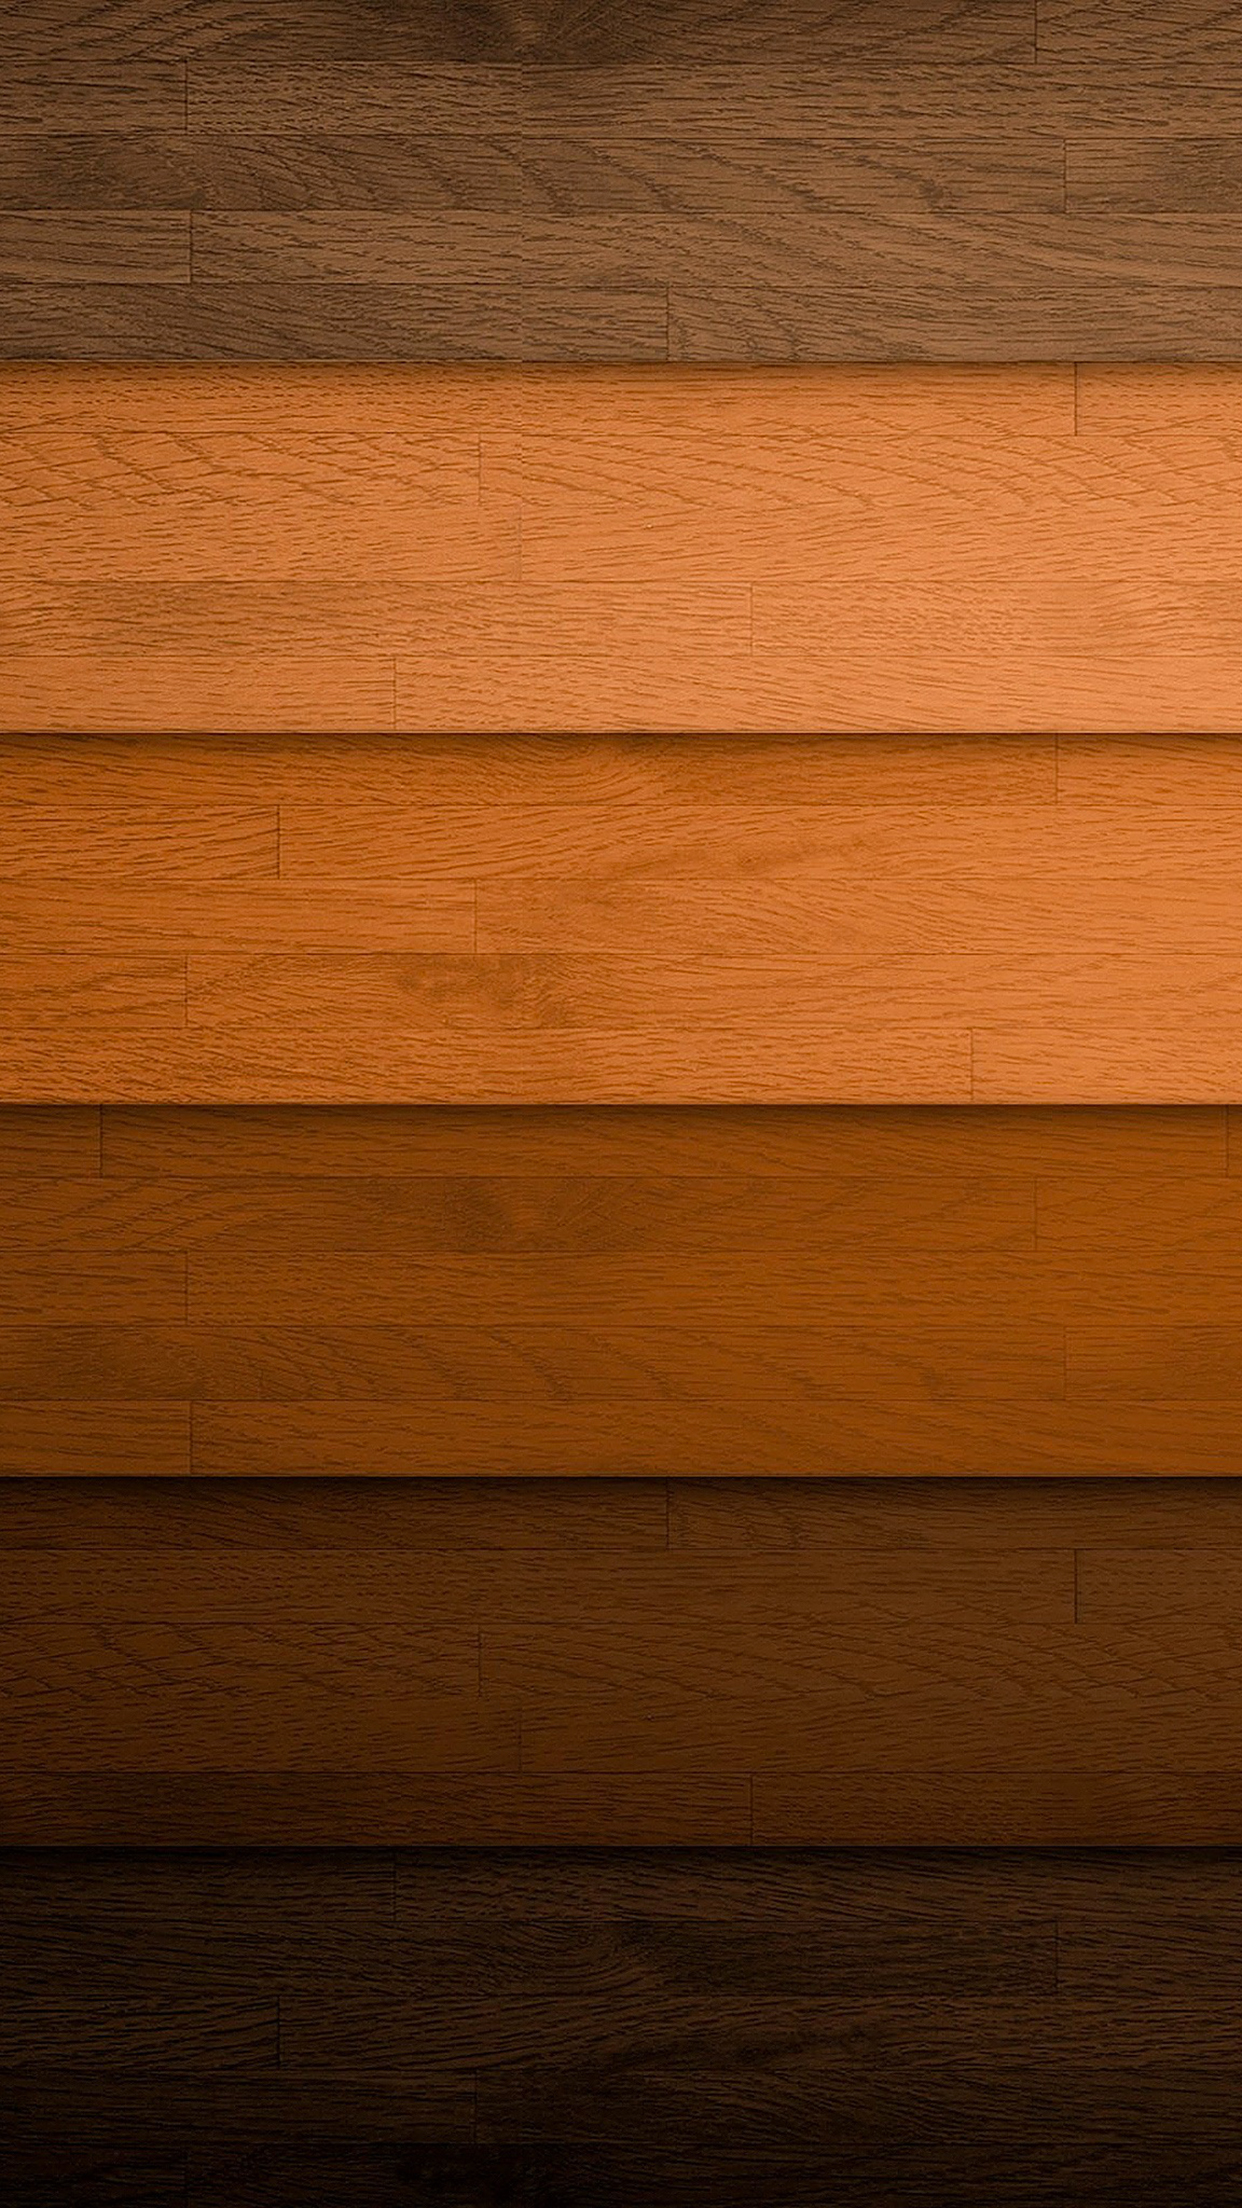 Wooden Planks 3Wallpapers iPhone Parallax Wooden Planks